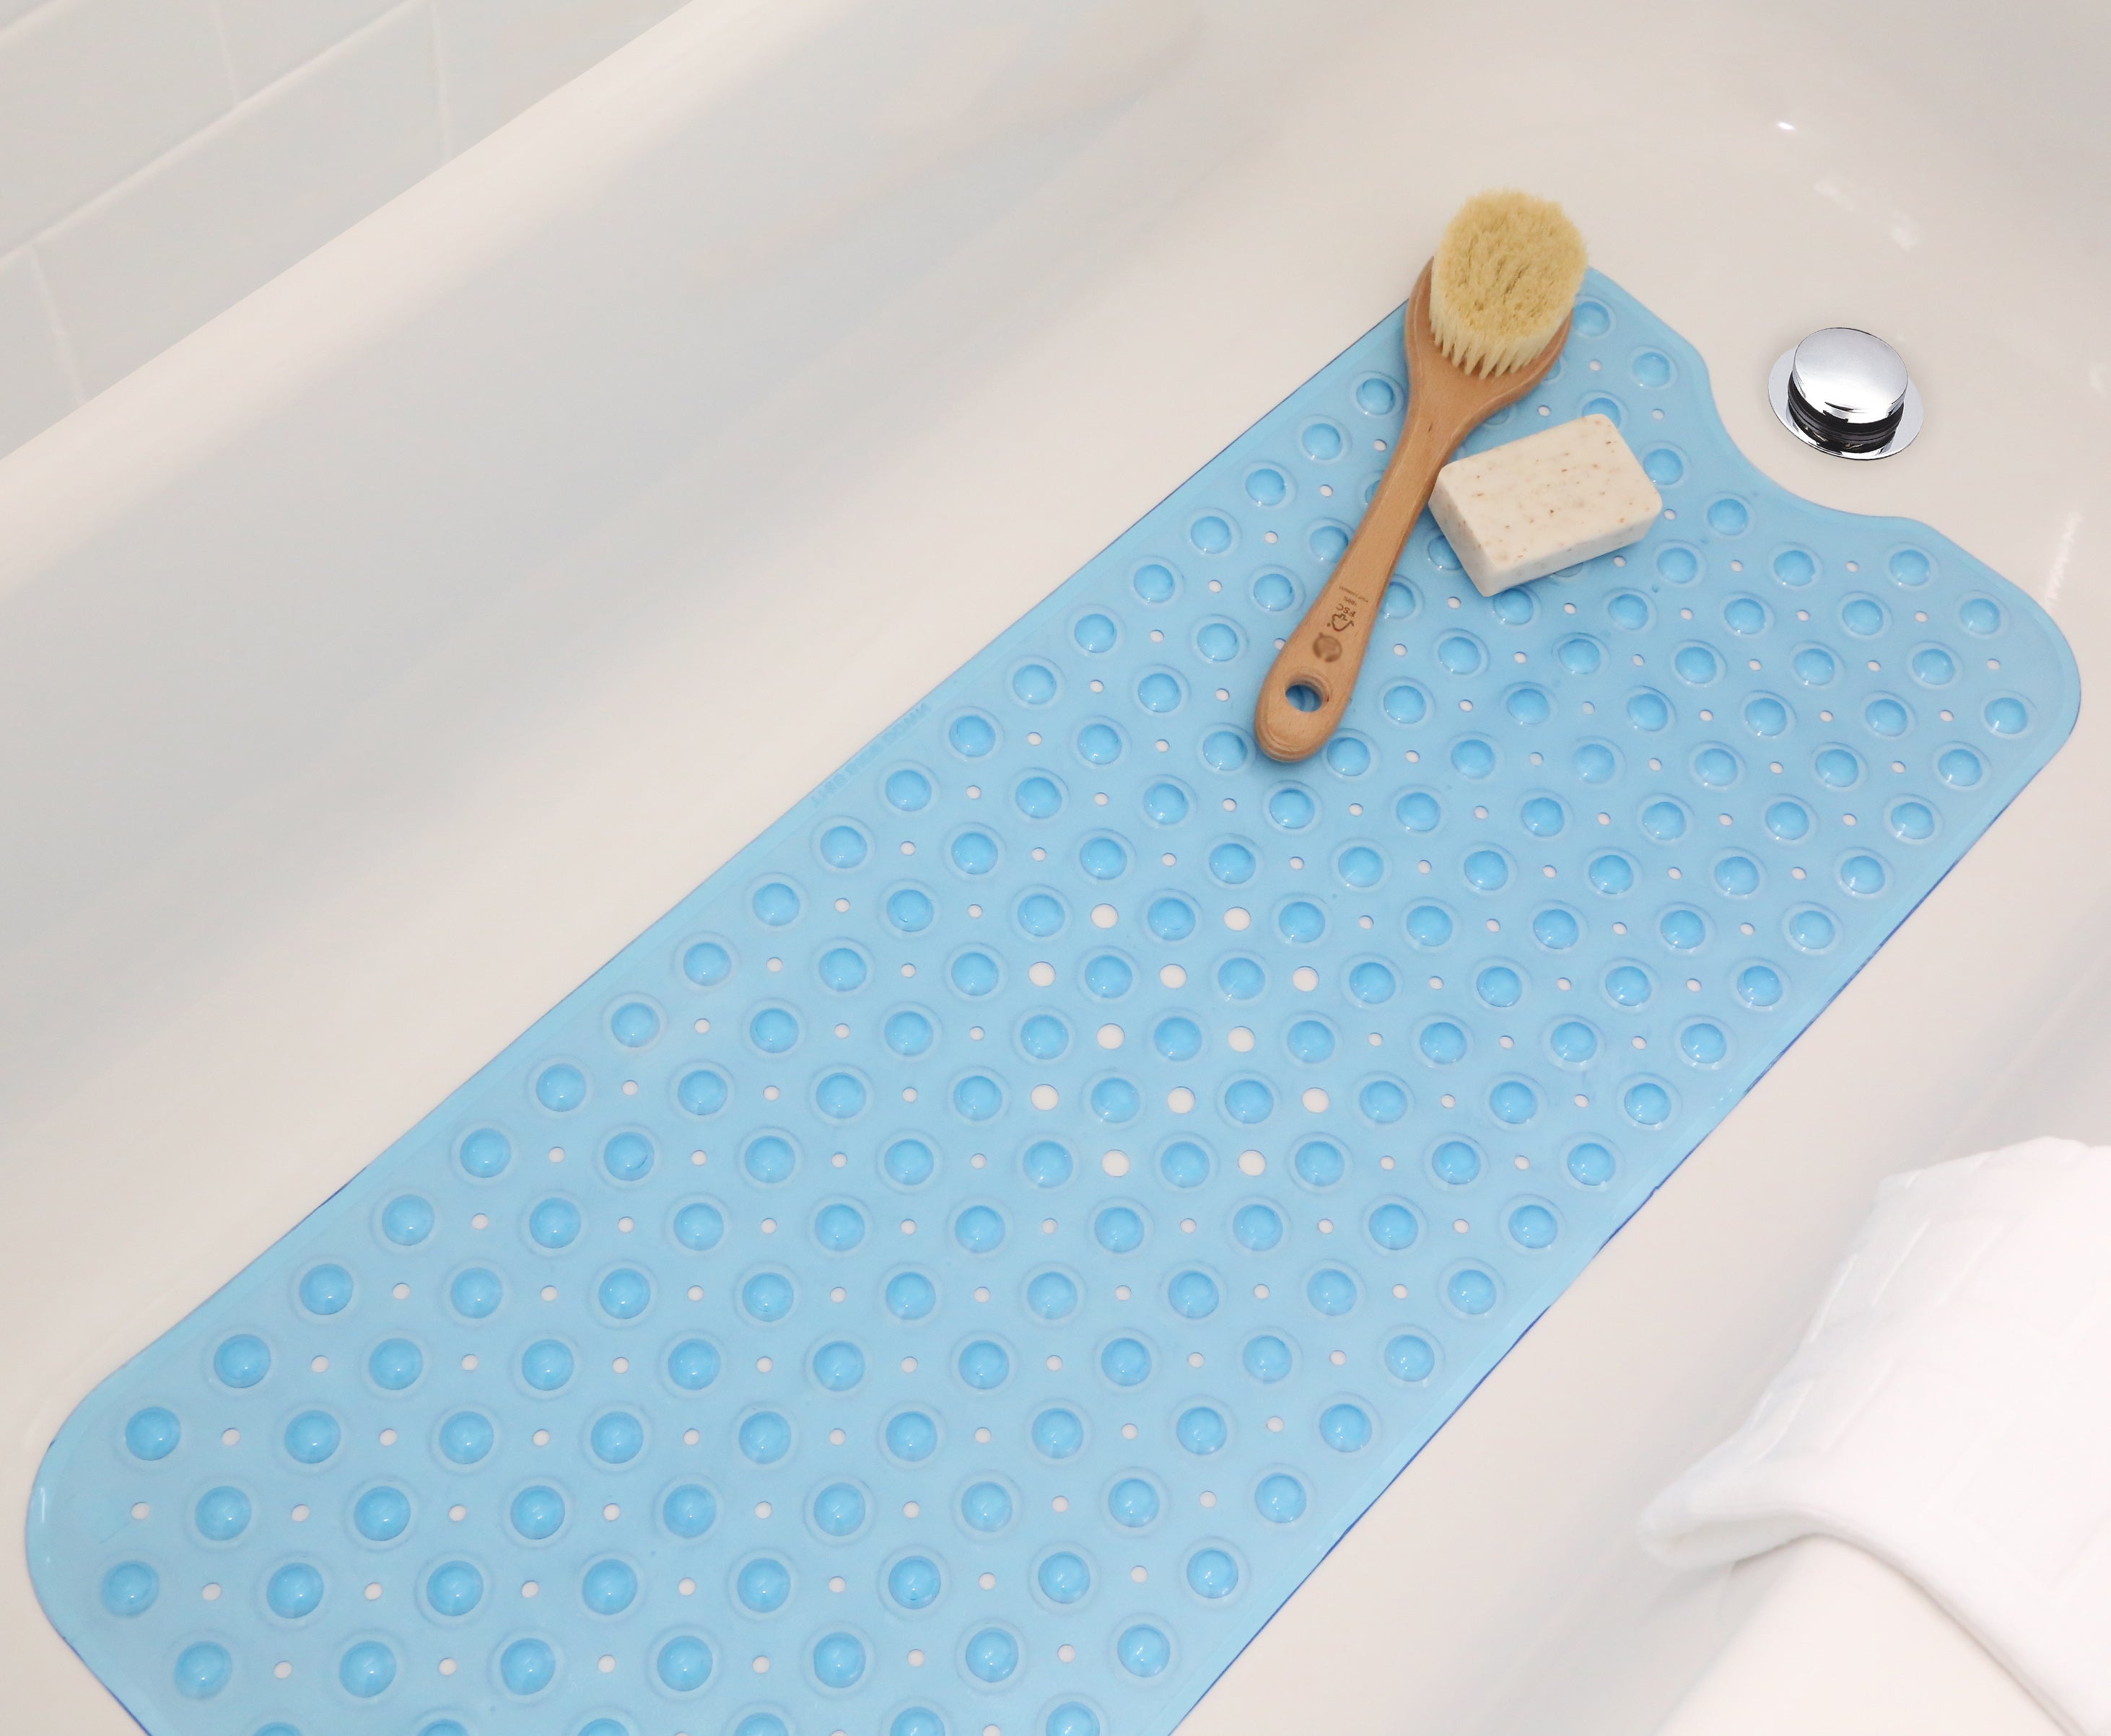 Shower Mats - Buy Anti-Slip, Anti Bacterial & Vinyl Bath Mats Online ...